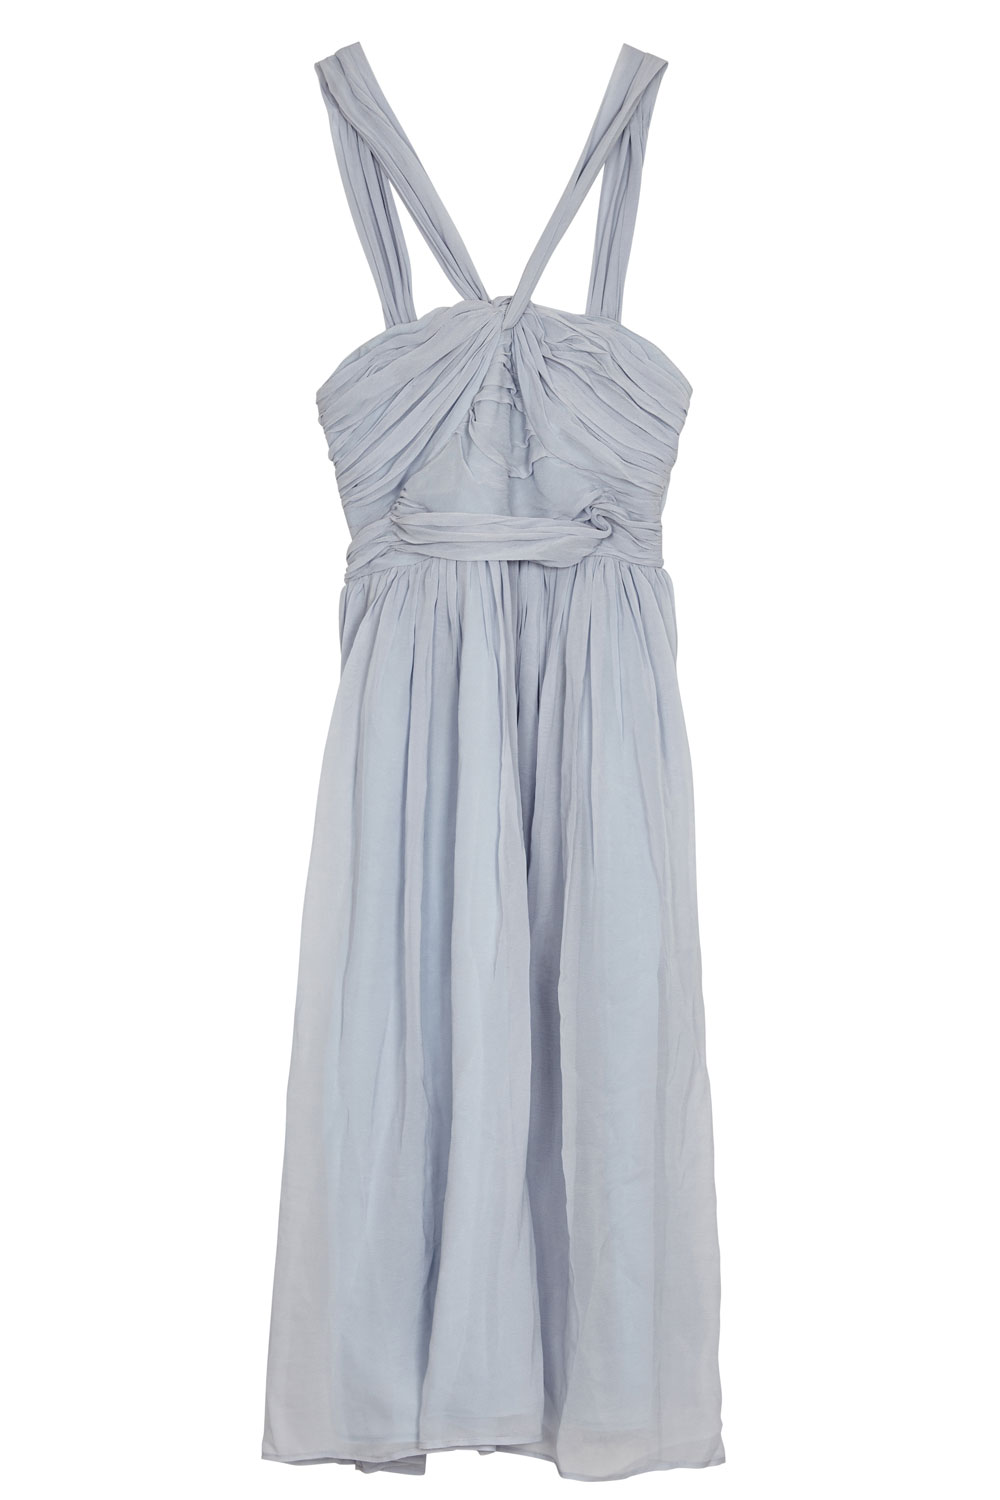 ASOS SS15 Collection: Pretty Bridesmaid Dresses | Look